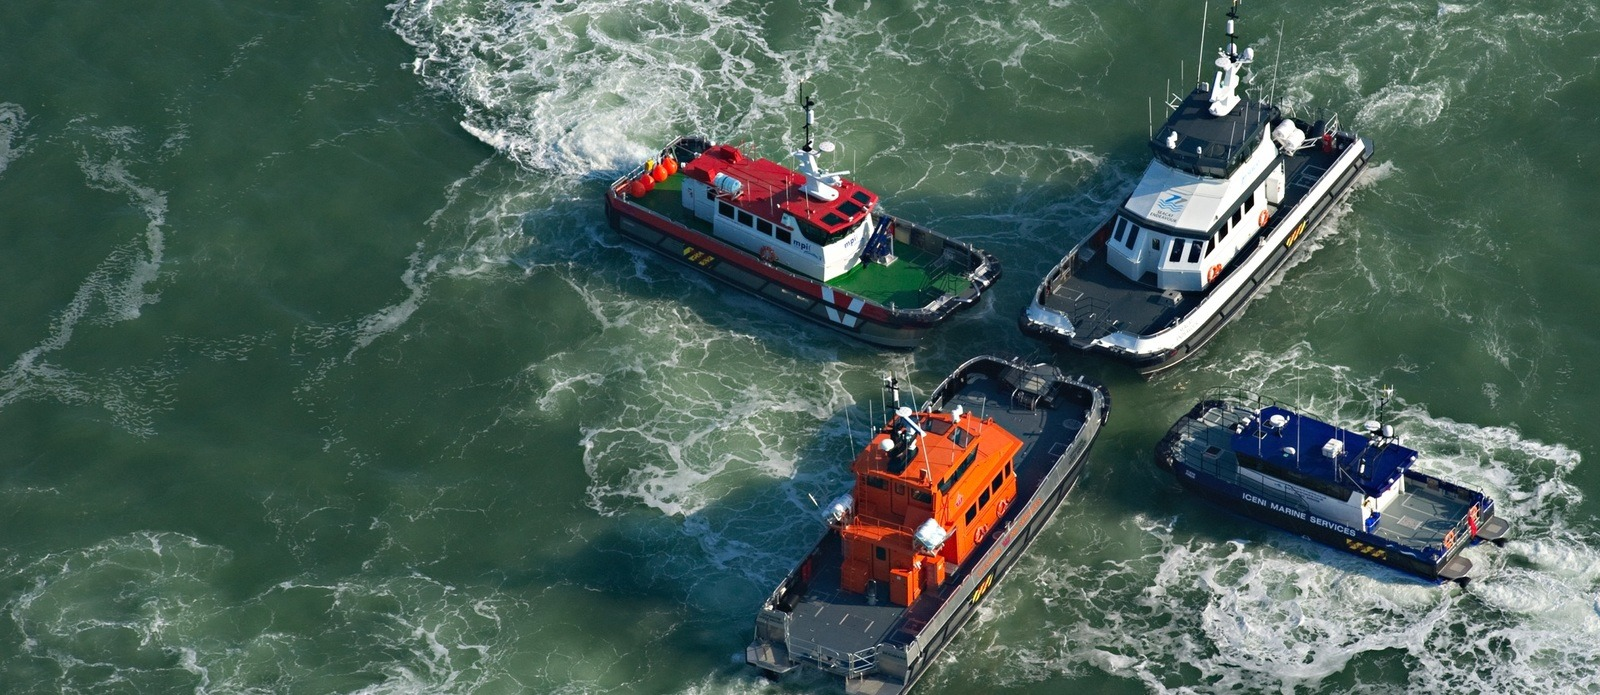 4btug boats in the water